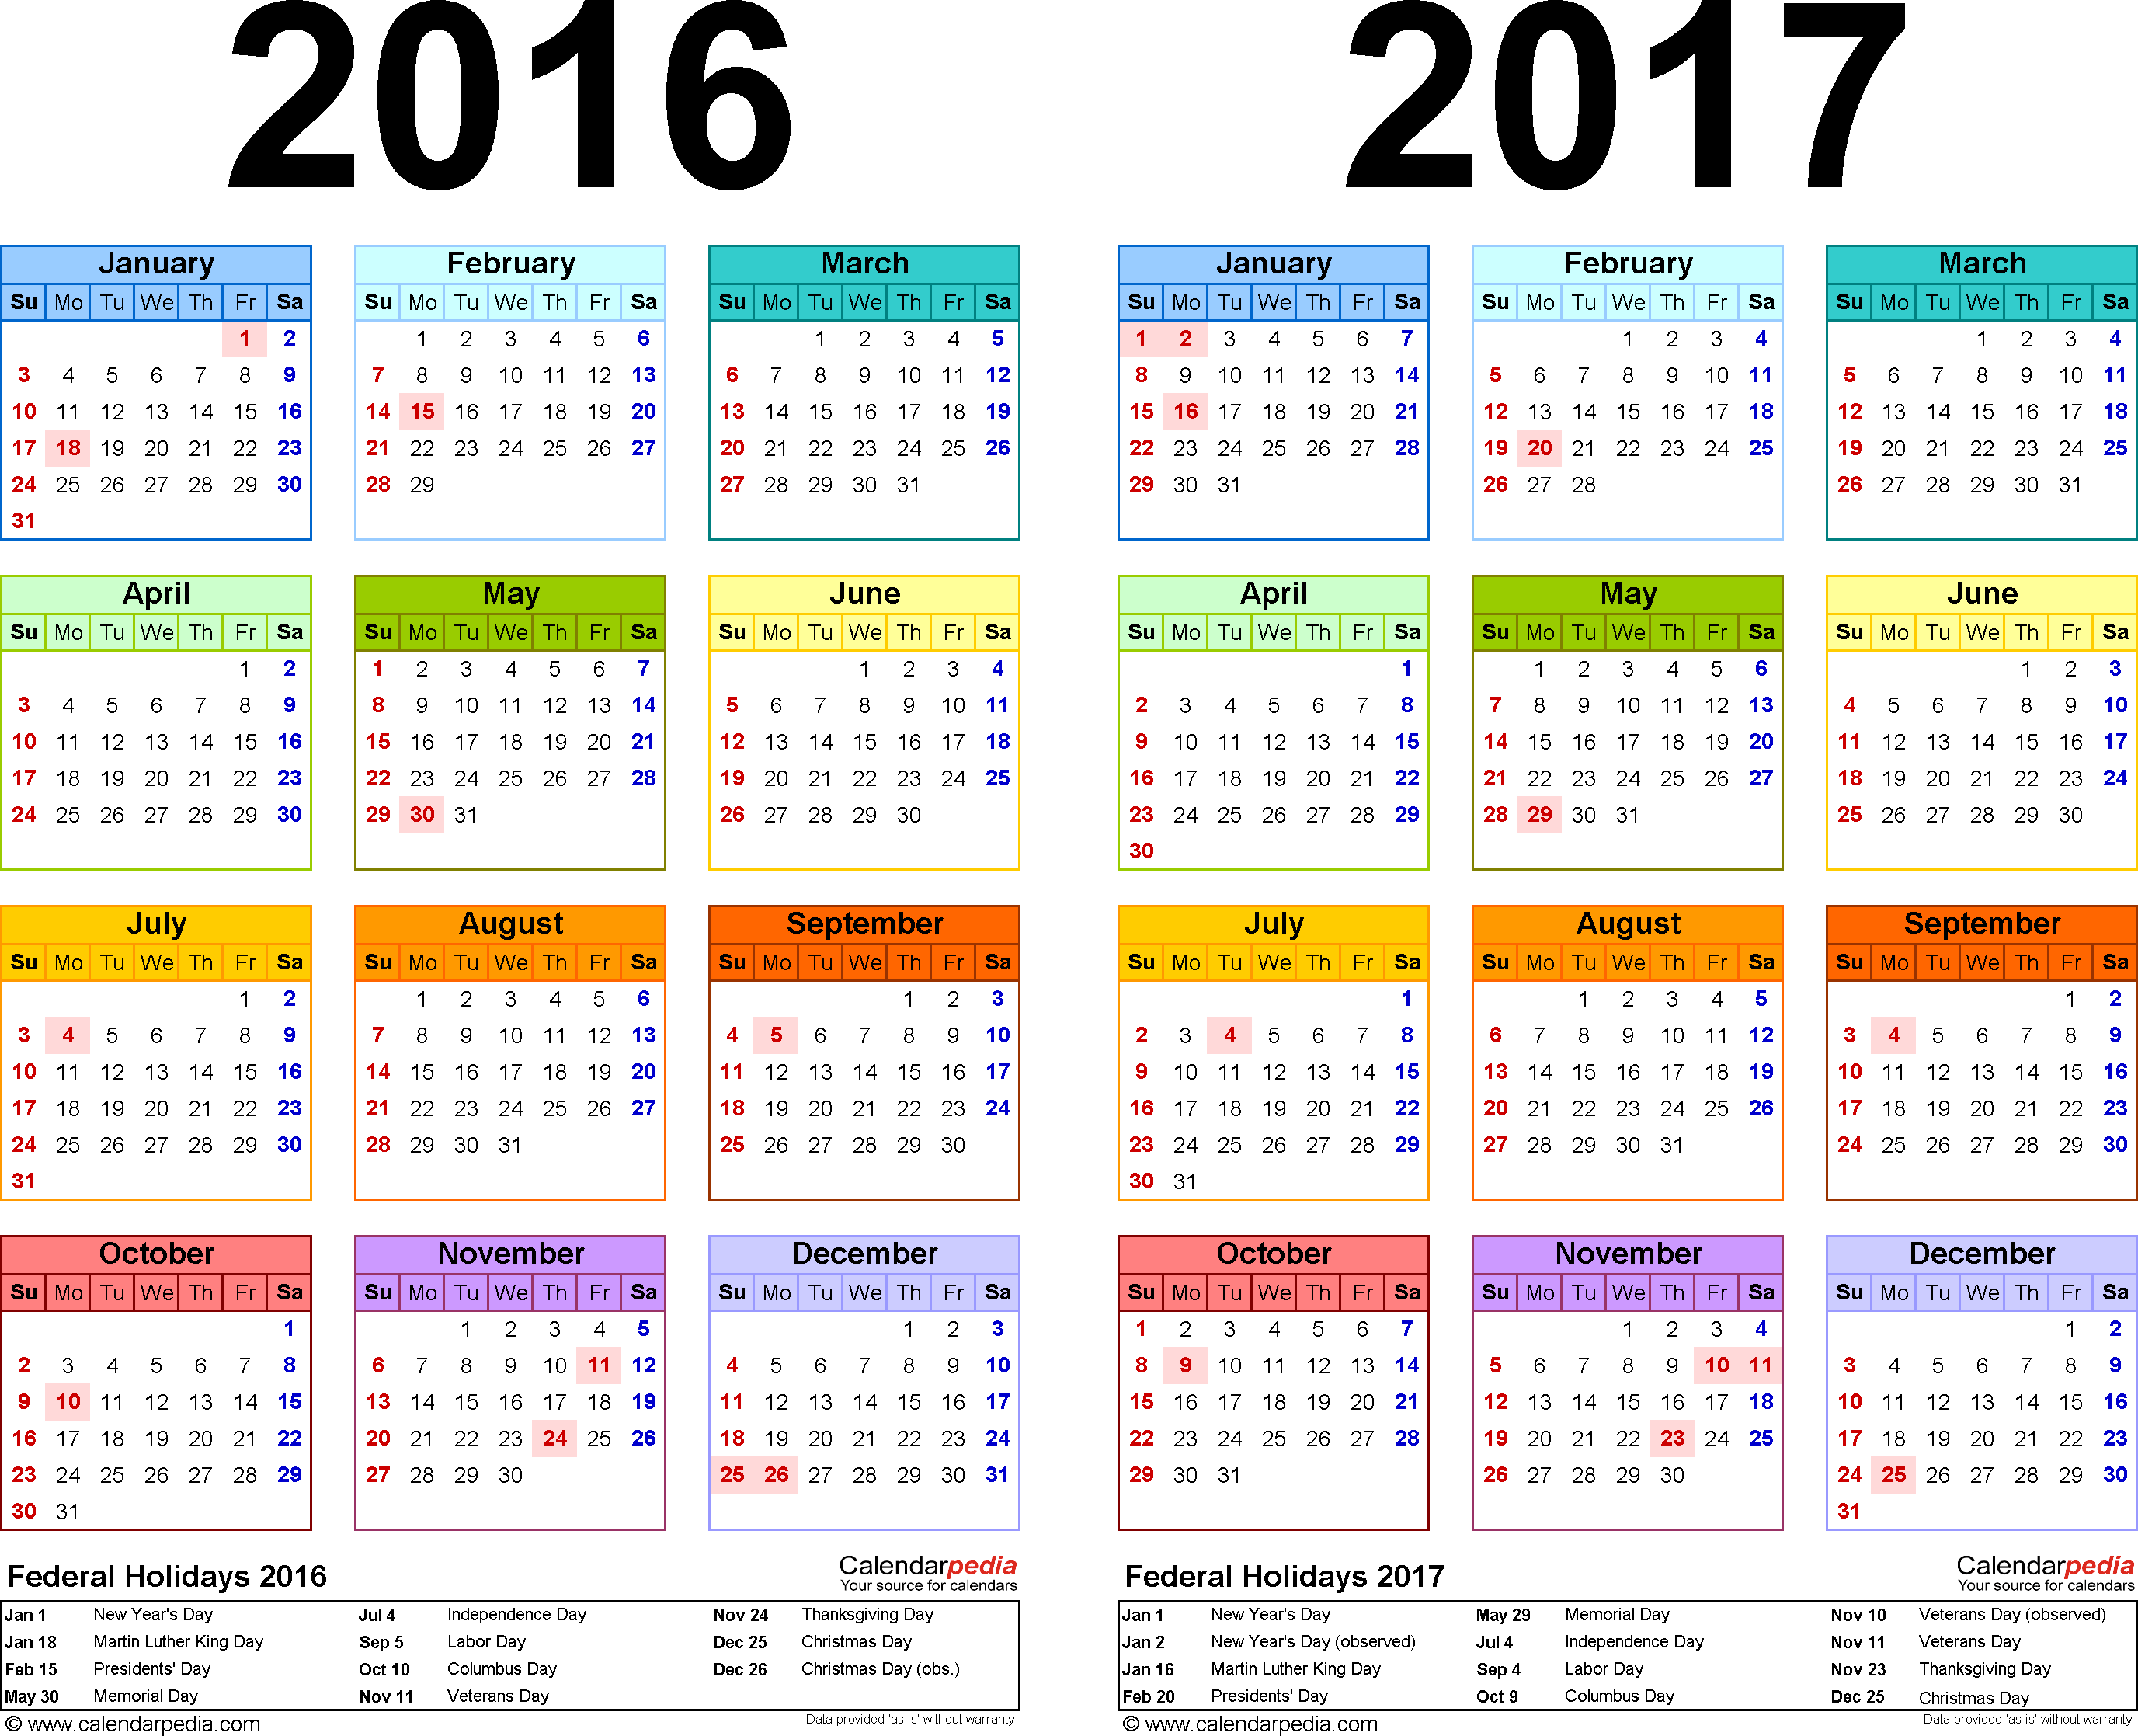 Template 2: PDF template for two year calendar 2016/2017 (landscape orientation, 1 page, in color)